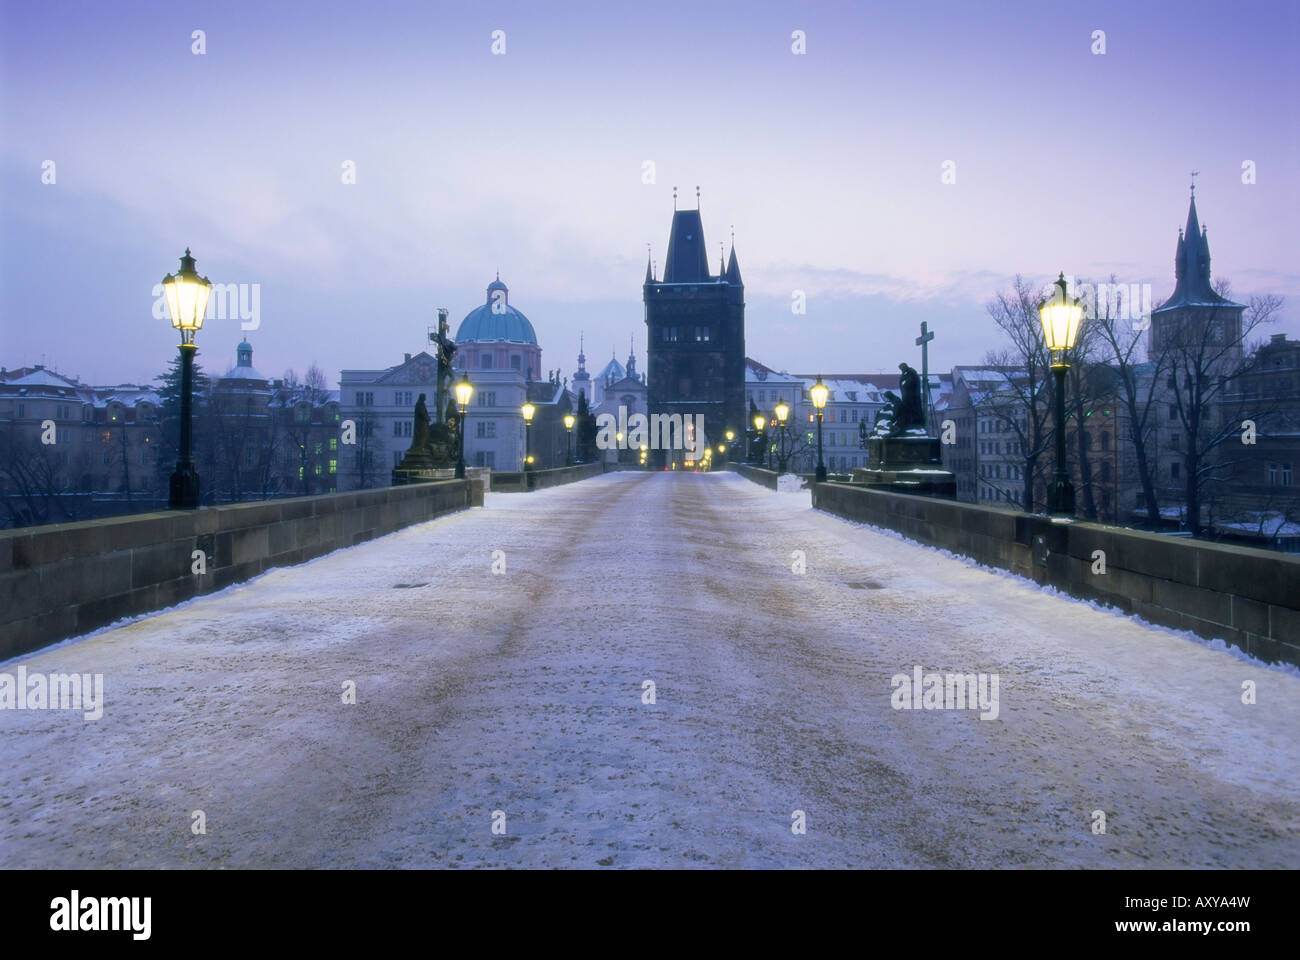 Charles Bridge in winter snow, Prague, UNESCO World Heritage Site, Czech Republic, Europe - Stock Image